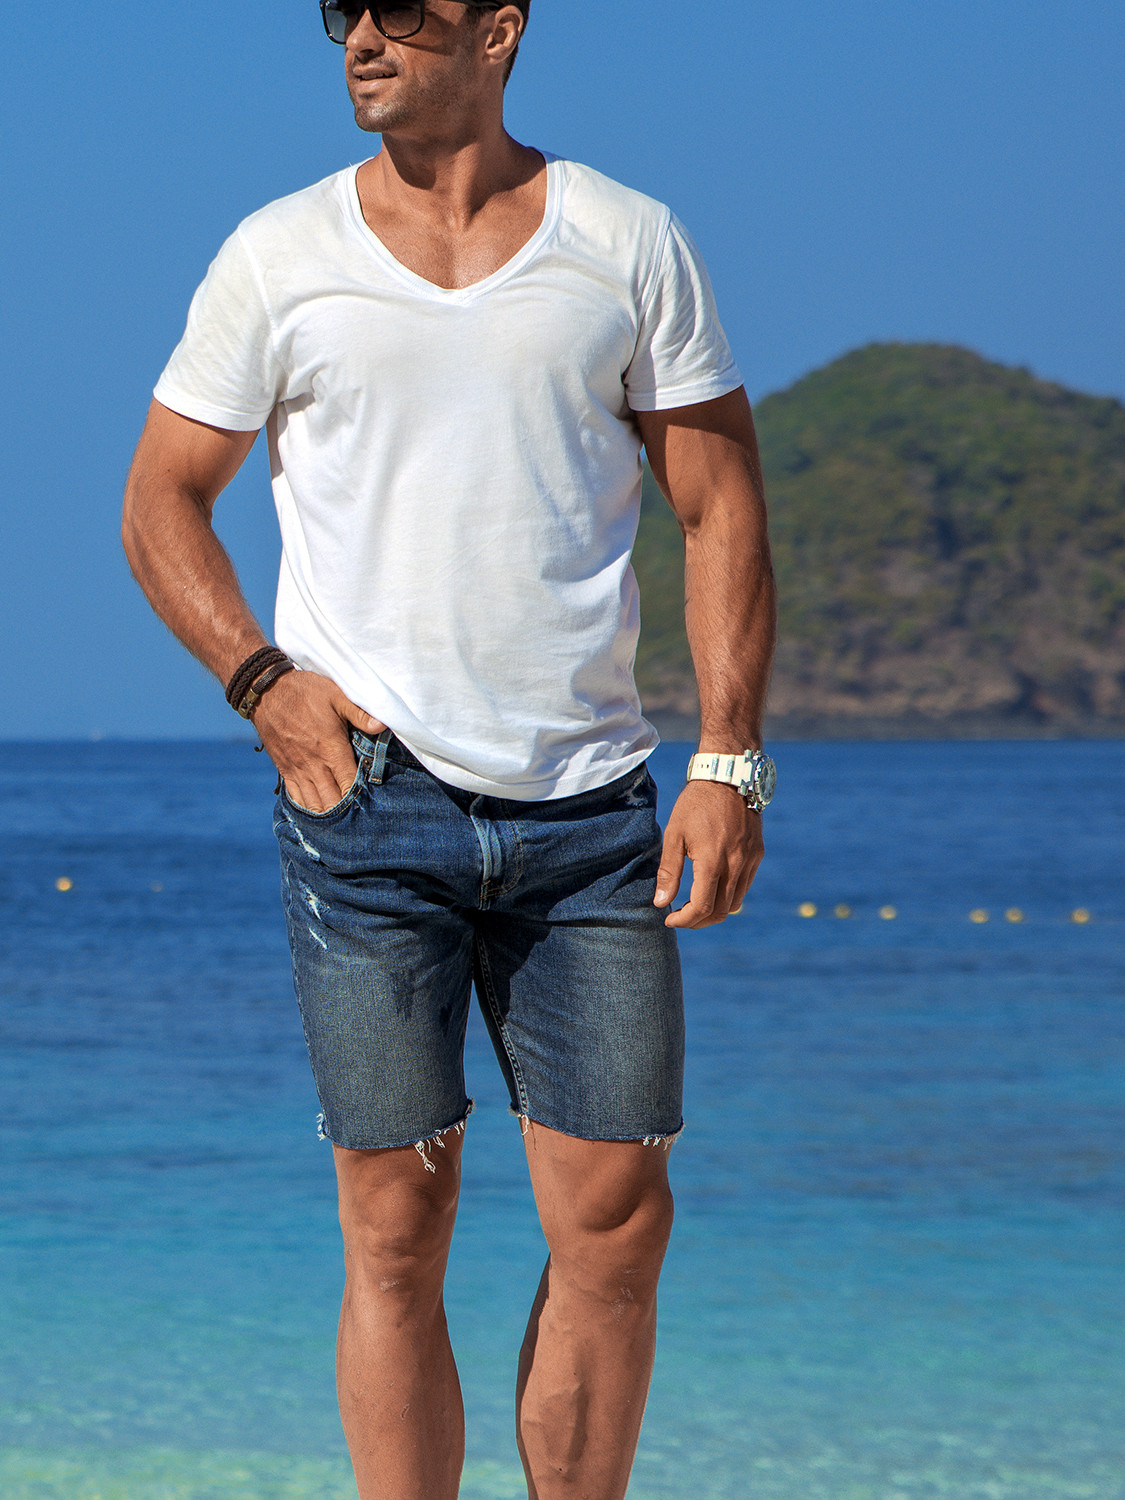 Men's outfit idea for 2021 with white v-neck t-shirt, blue denim shorts. Suitable for summer.